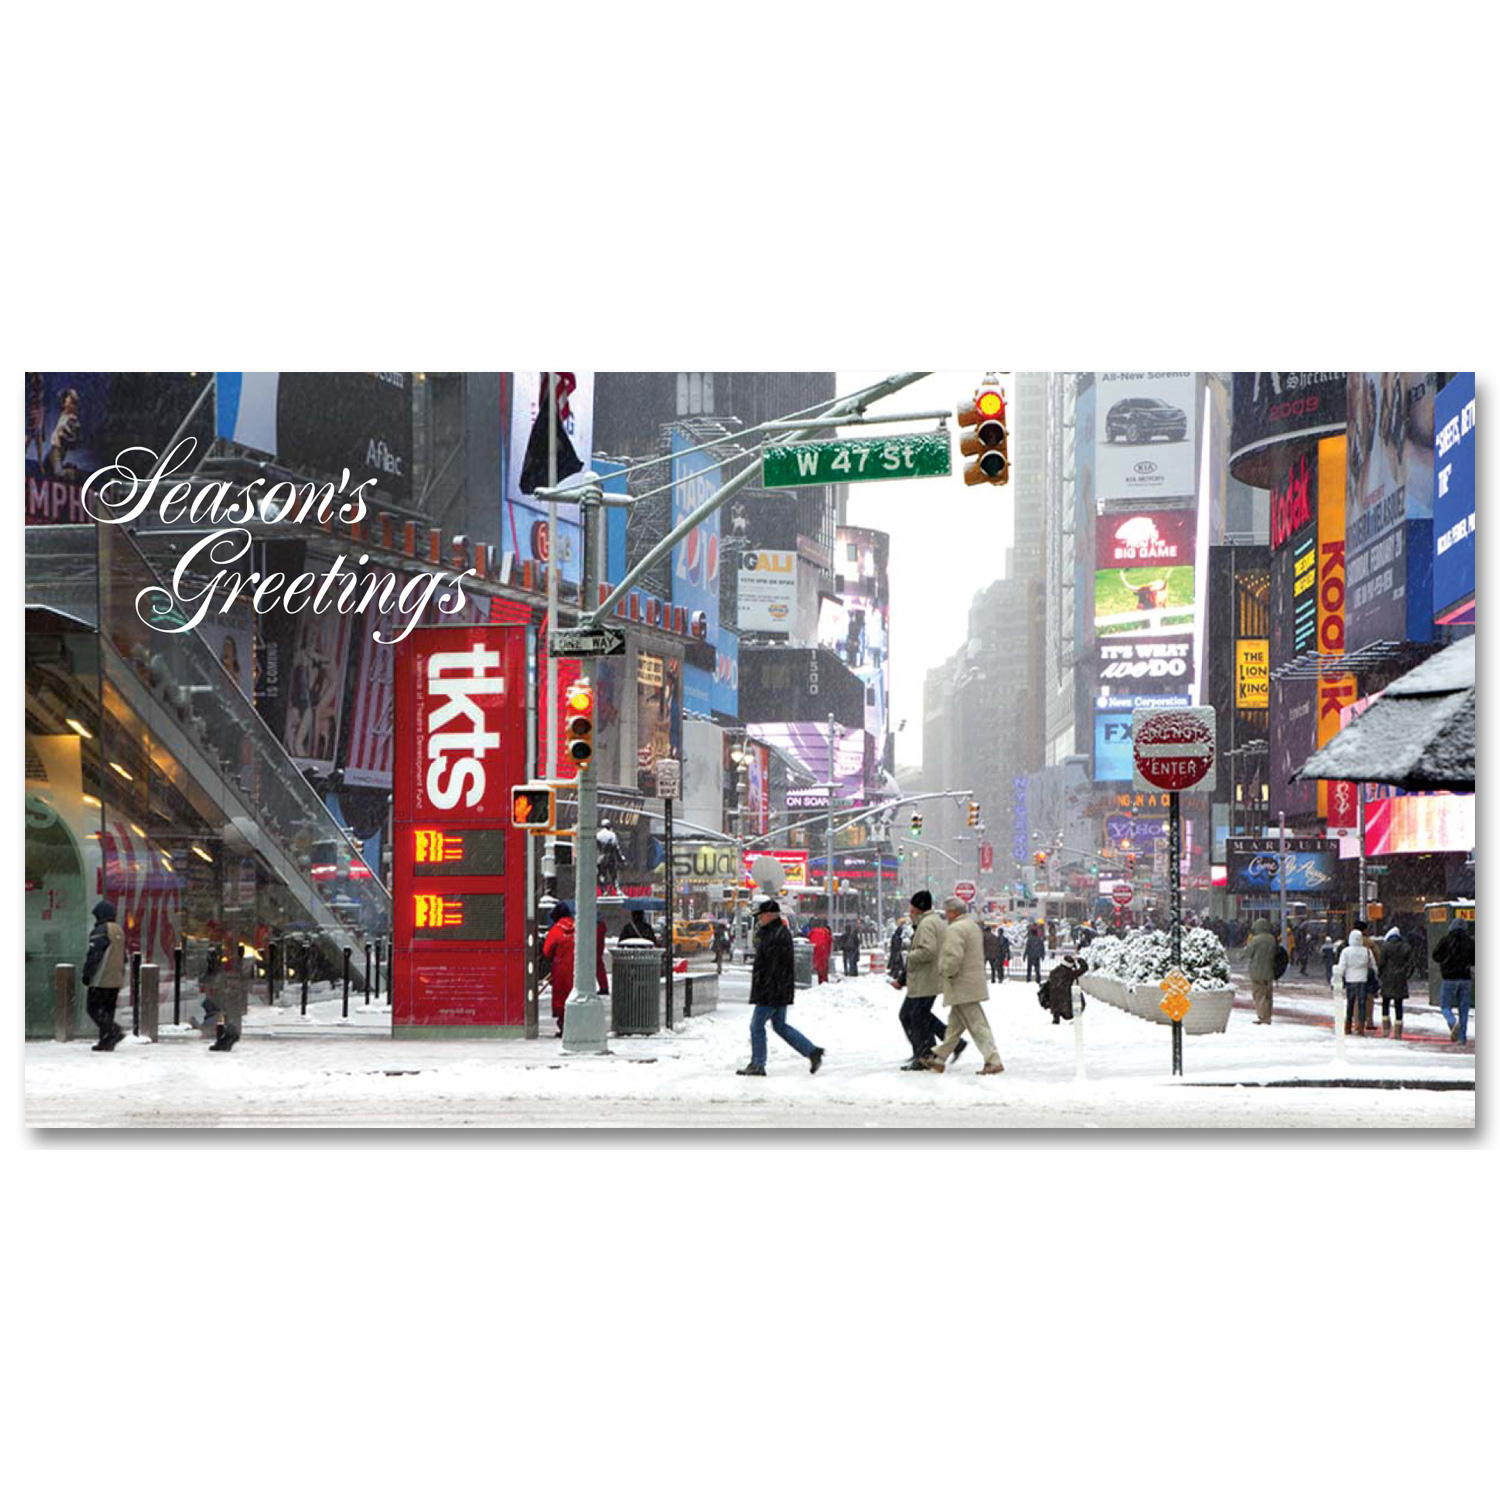 Snow on Times Square at Ticket Booth – Holidays Money Greeting Cards Holders Set of 6